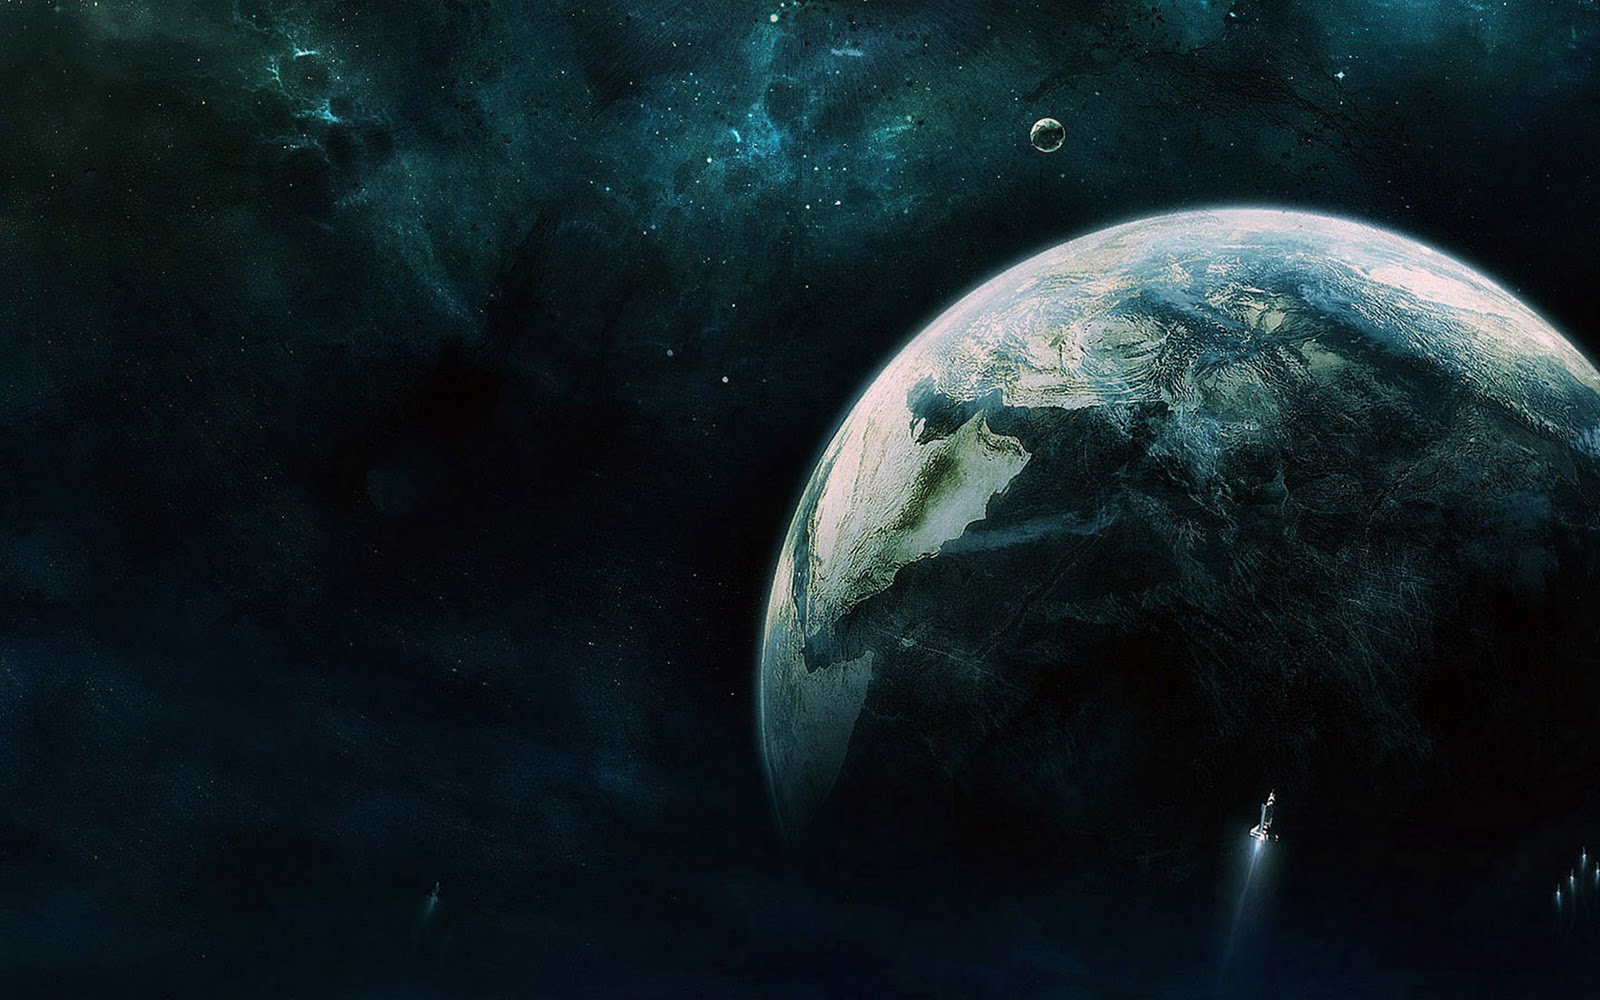 Wallpapers win 7 page 2 - Windows 7 space wallpaper ...